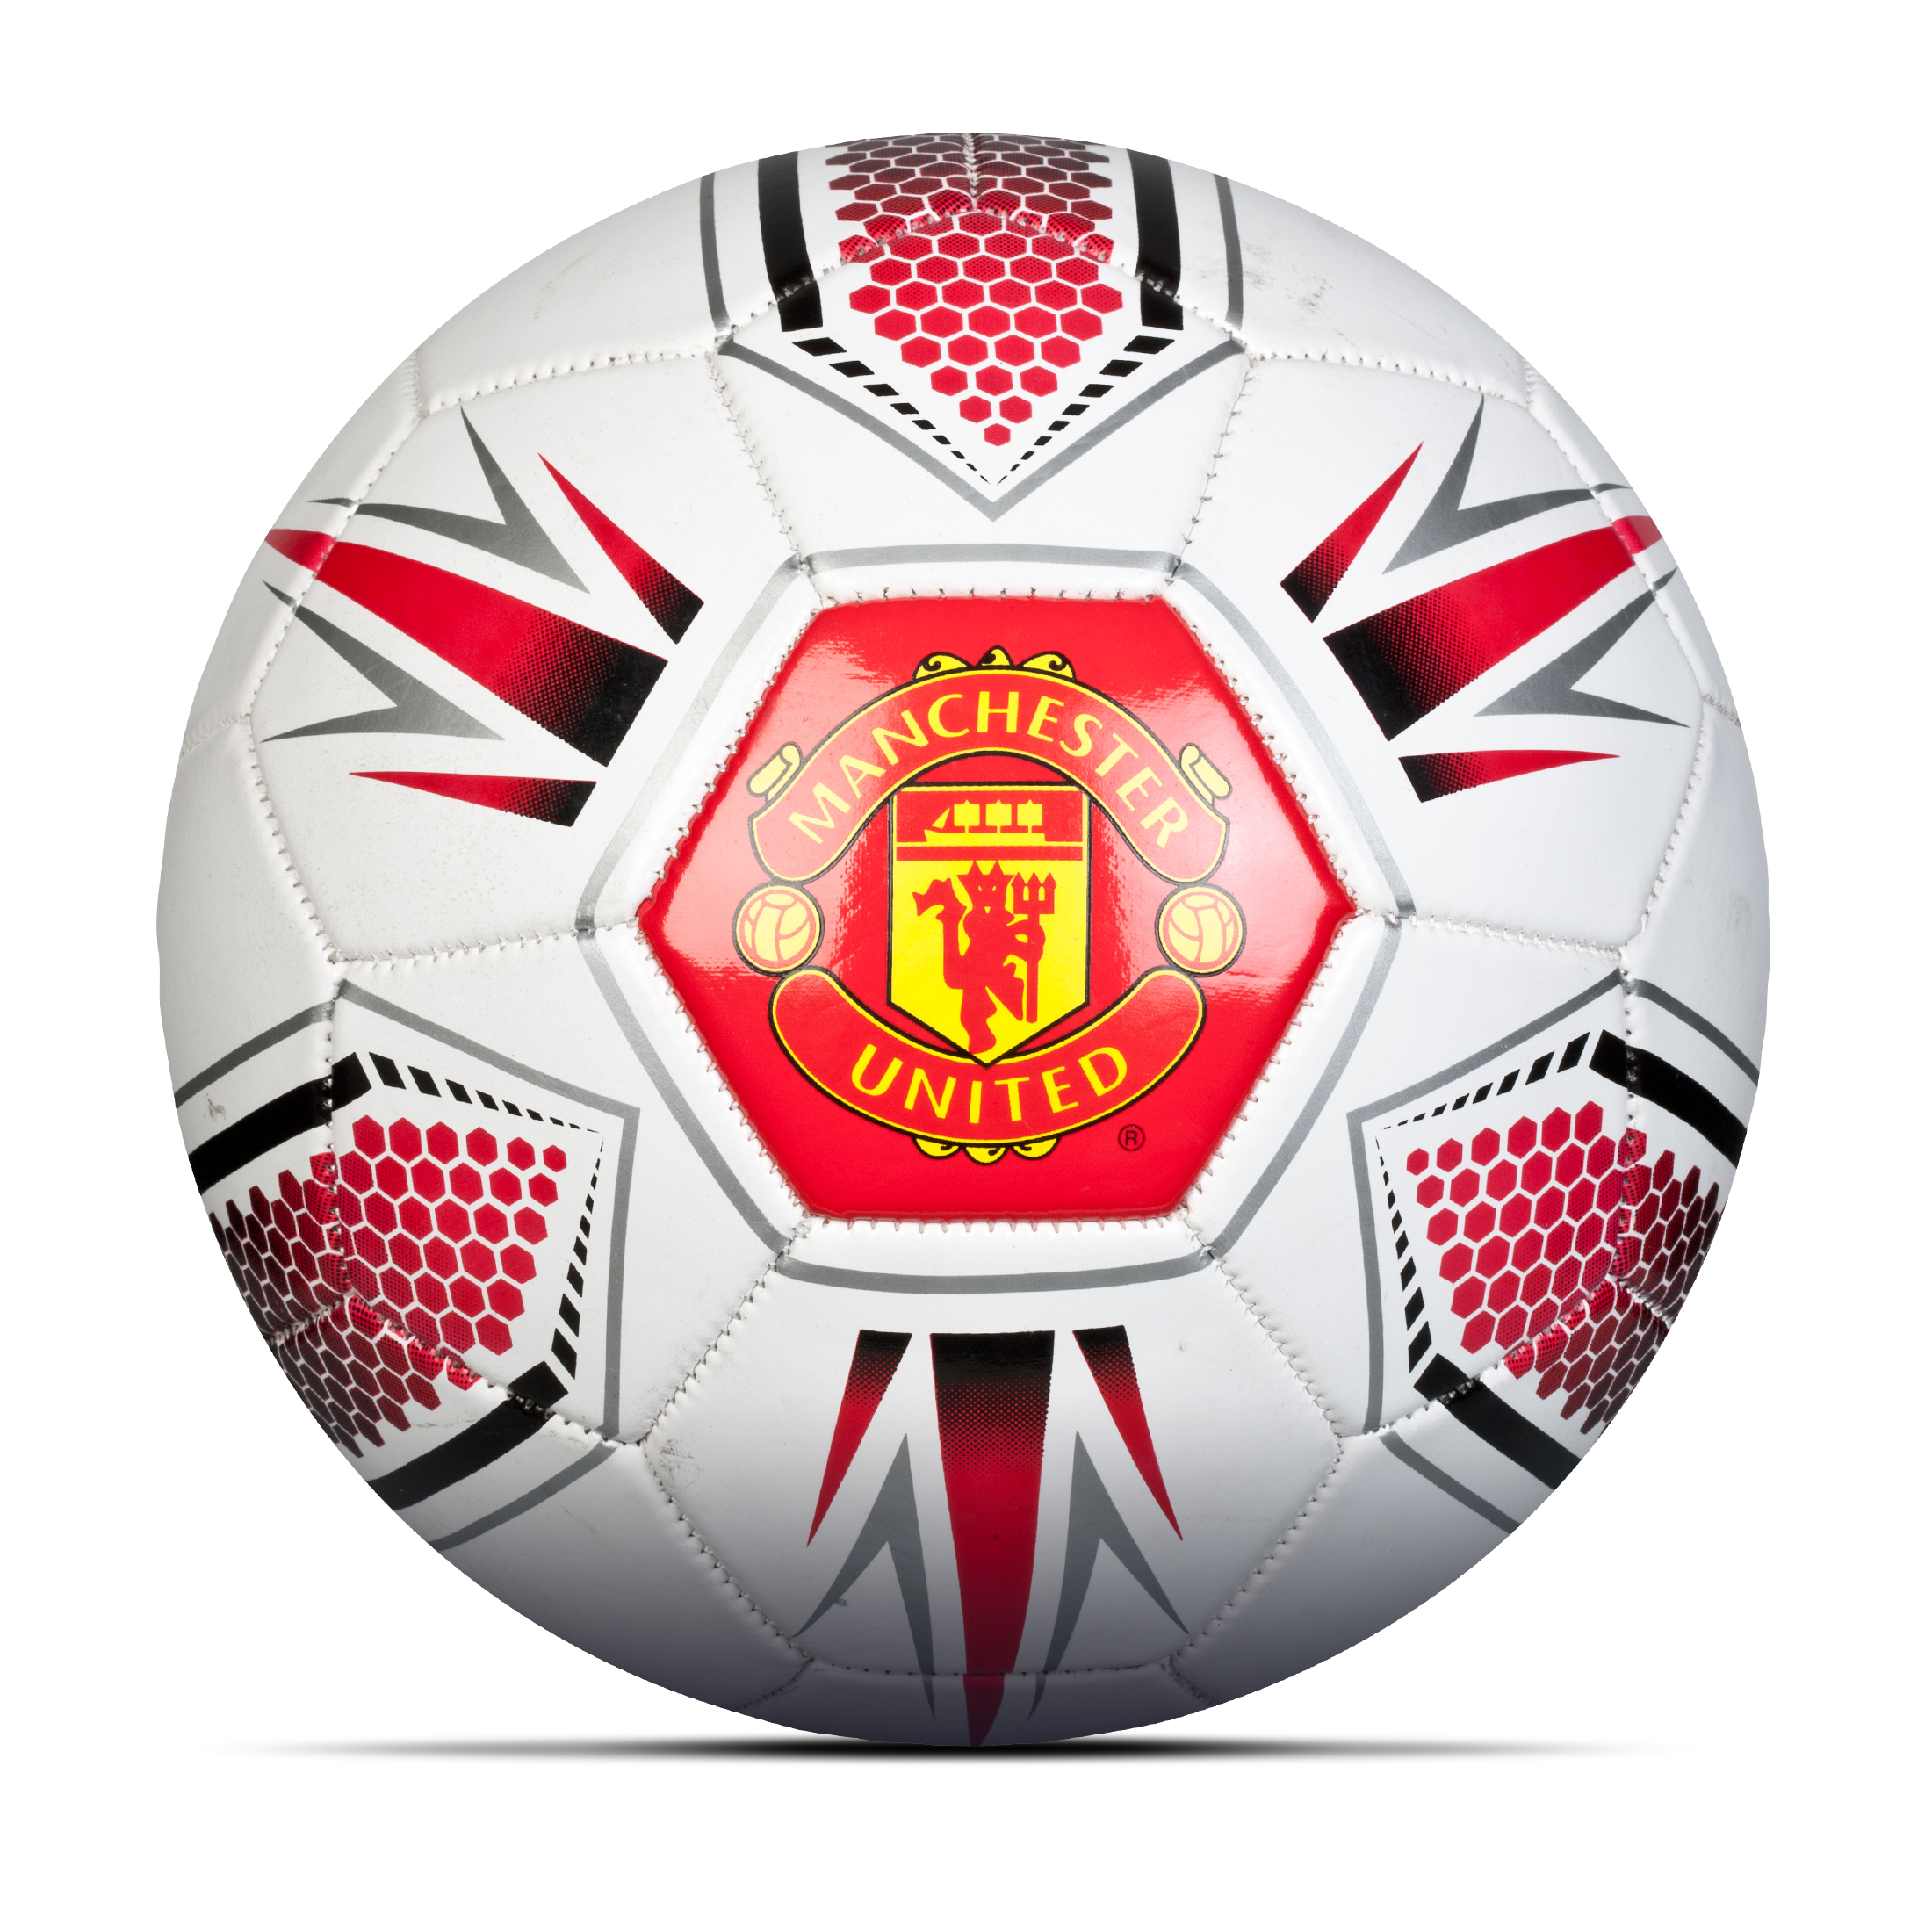 Manchester United Hex Football - Size 5